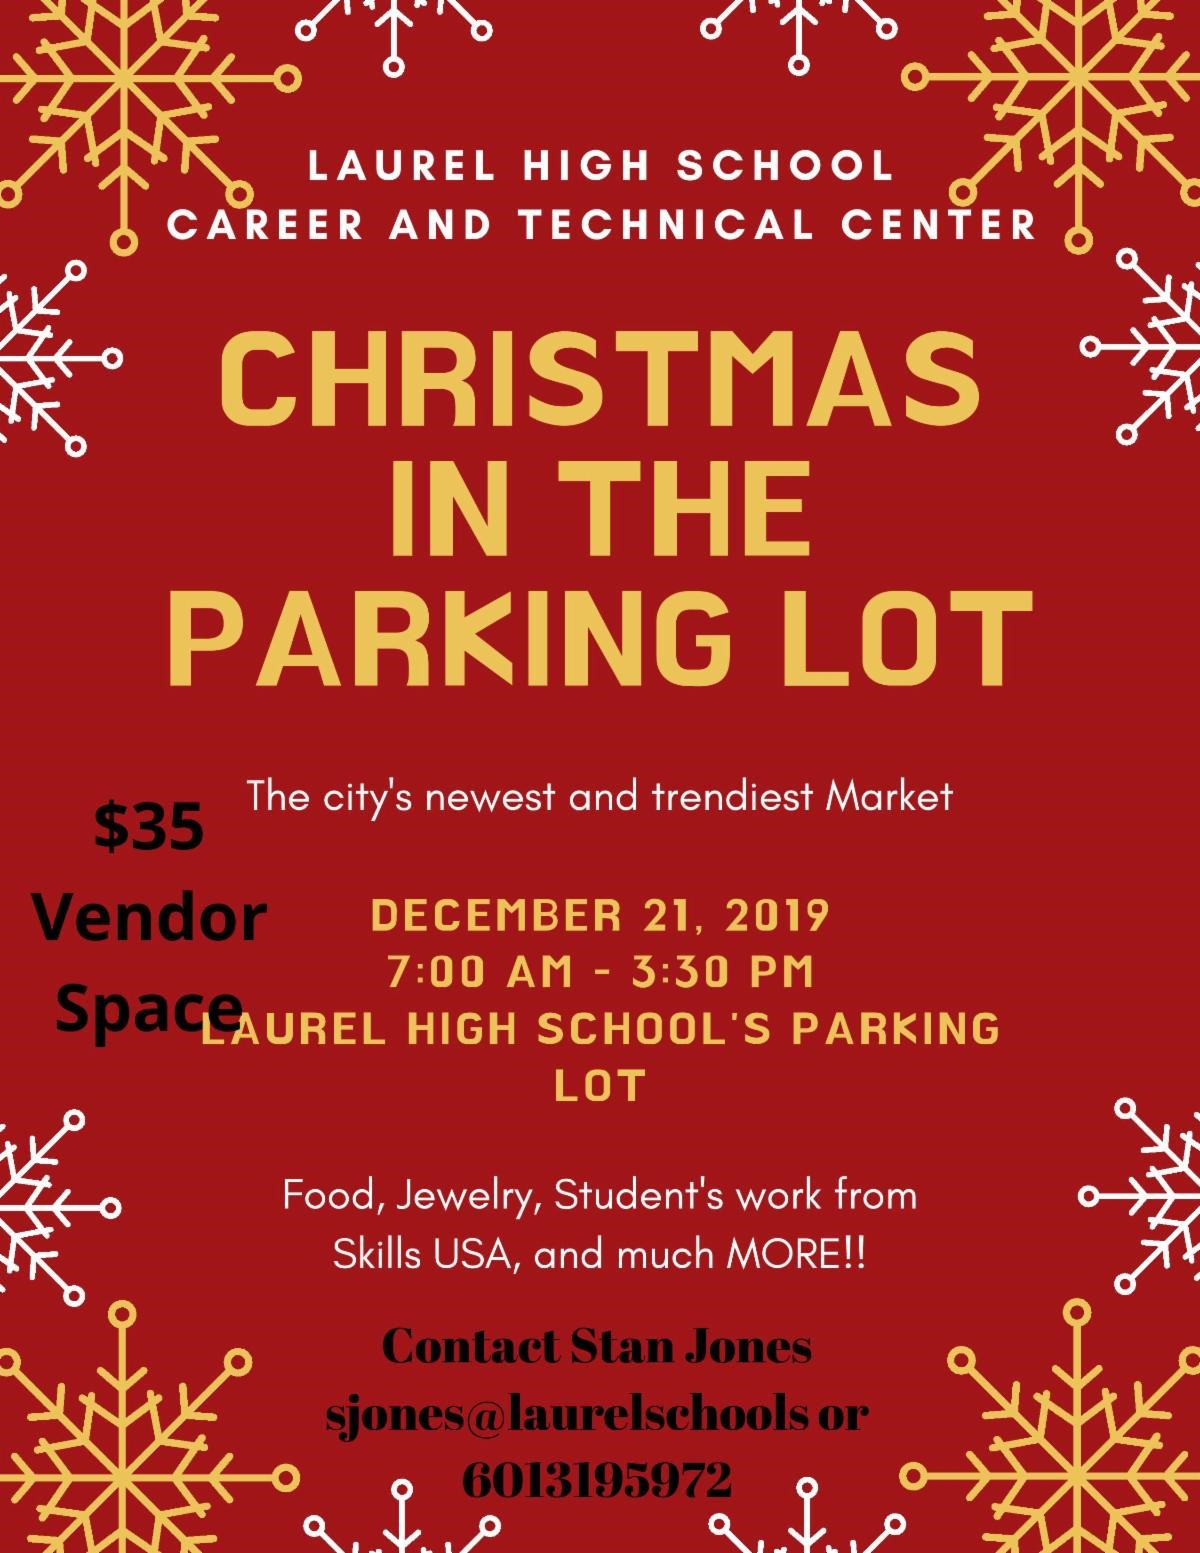 The City of Laurel, Christmas in the Parking Lot